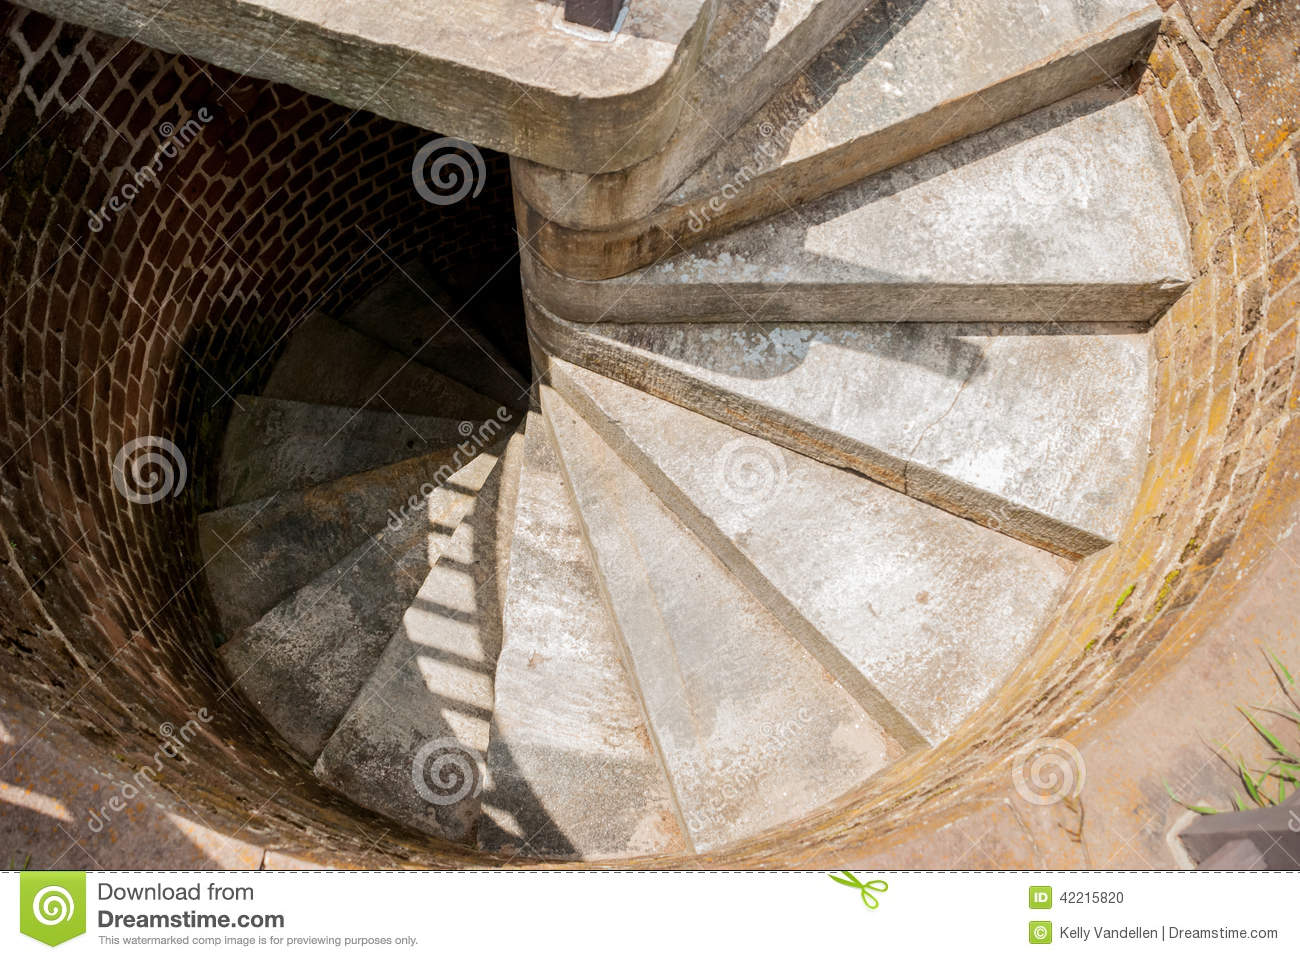 Tight Concrete Steps Work Up A Spiral Staircase To The Top Of A Lighthouse